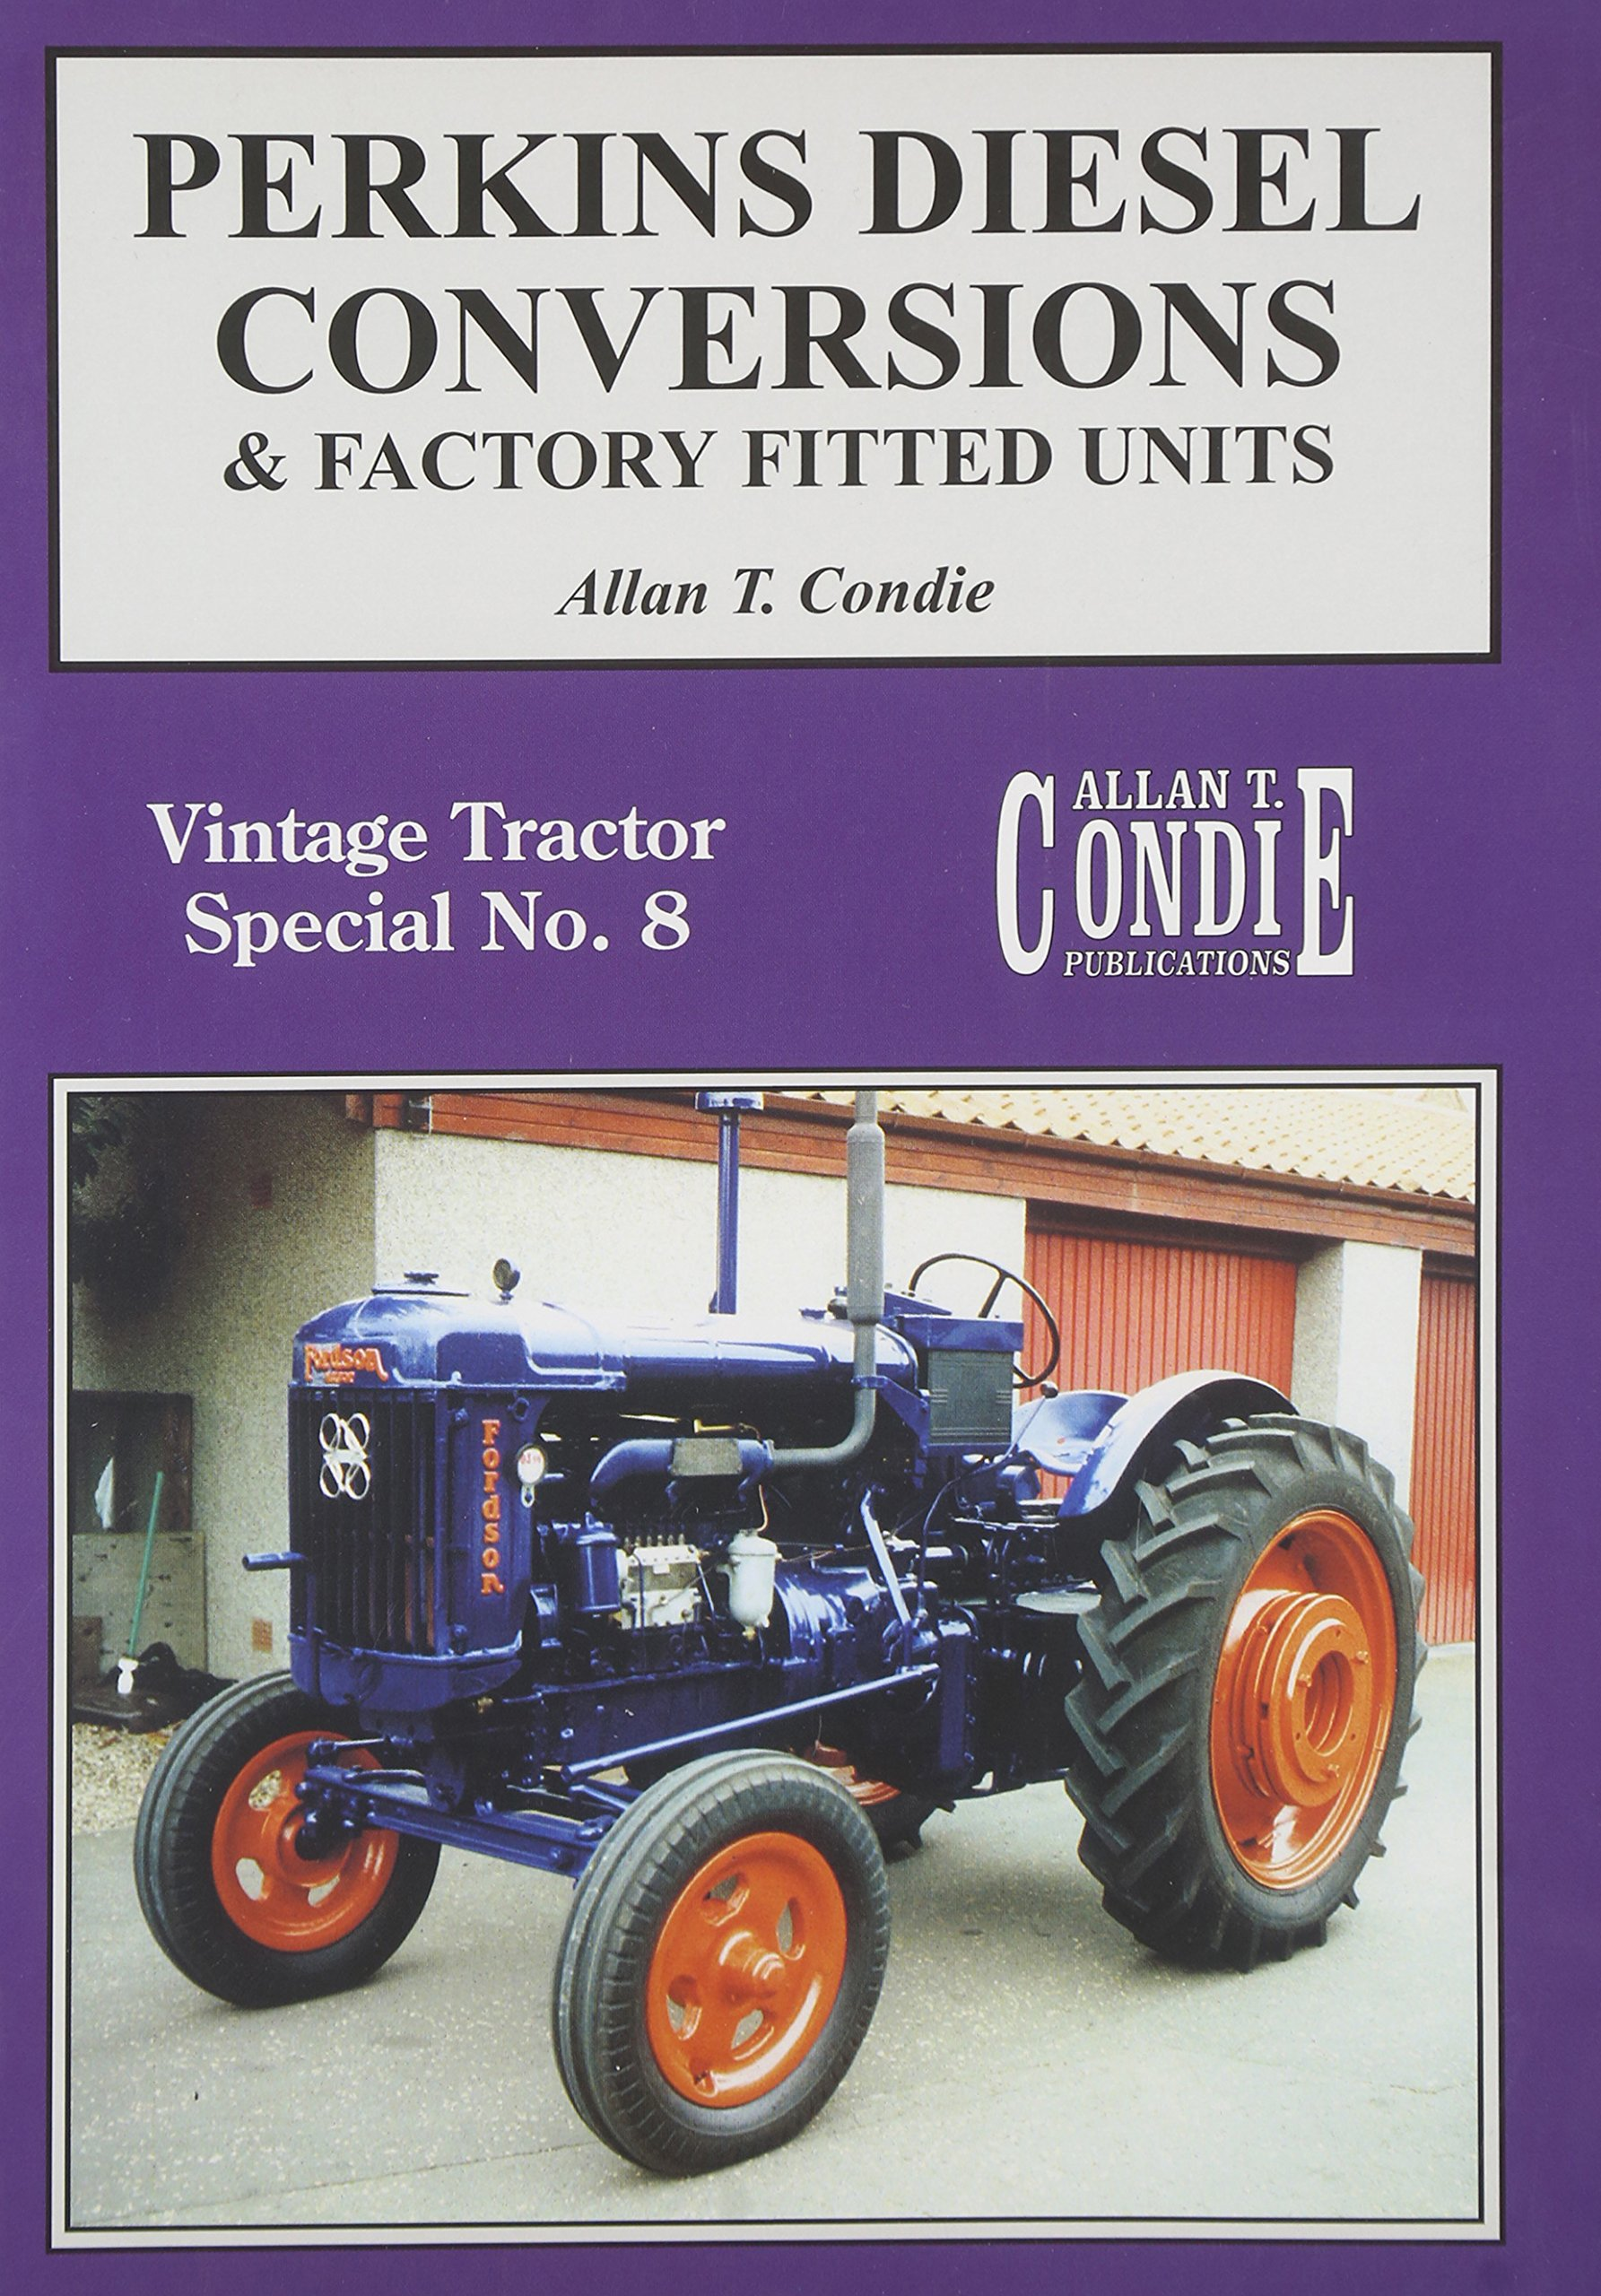 Perkins Diesel Conversions & Factory Fitted Units: Vintage Tractor Special No. 8 pdf